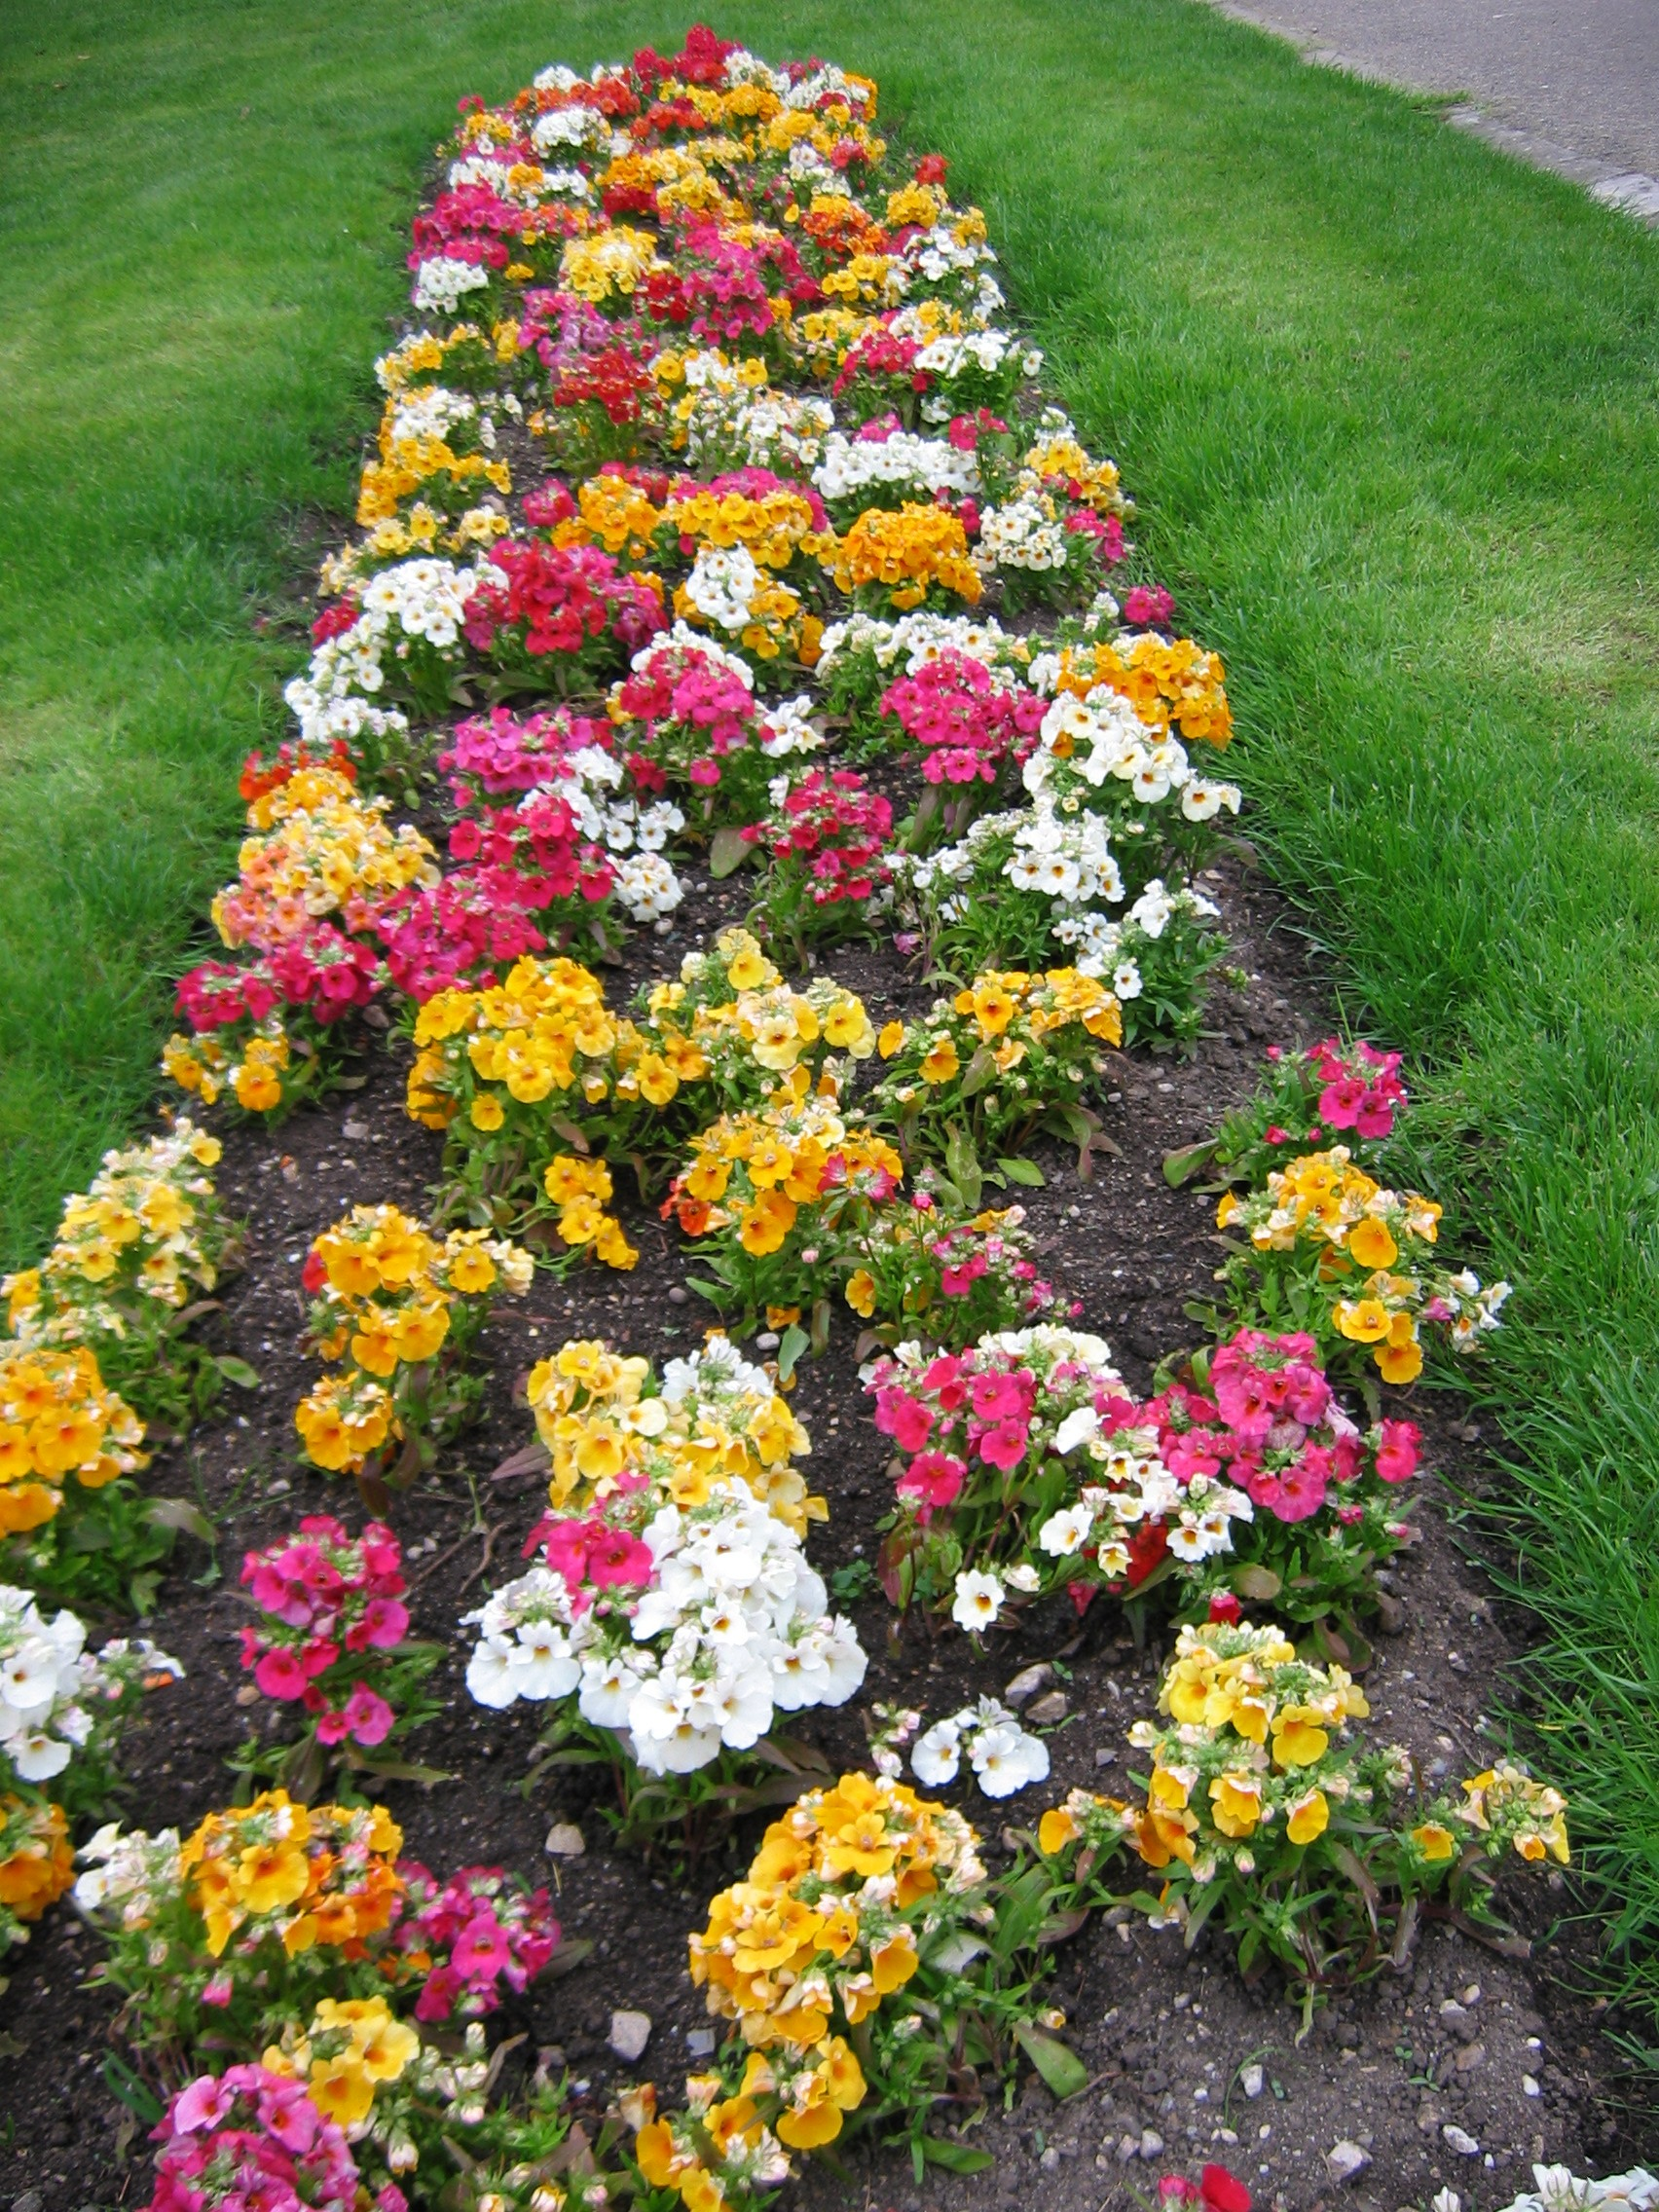 Flower Bed Designs Flower Beds And Bed Designs On Pinterest